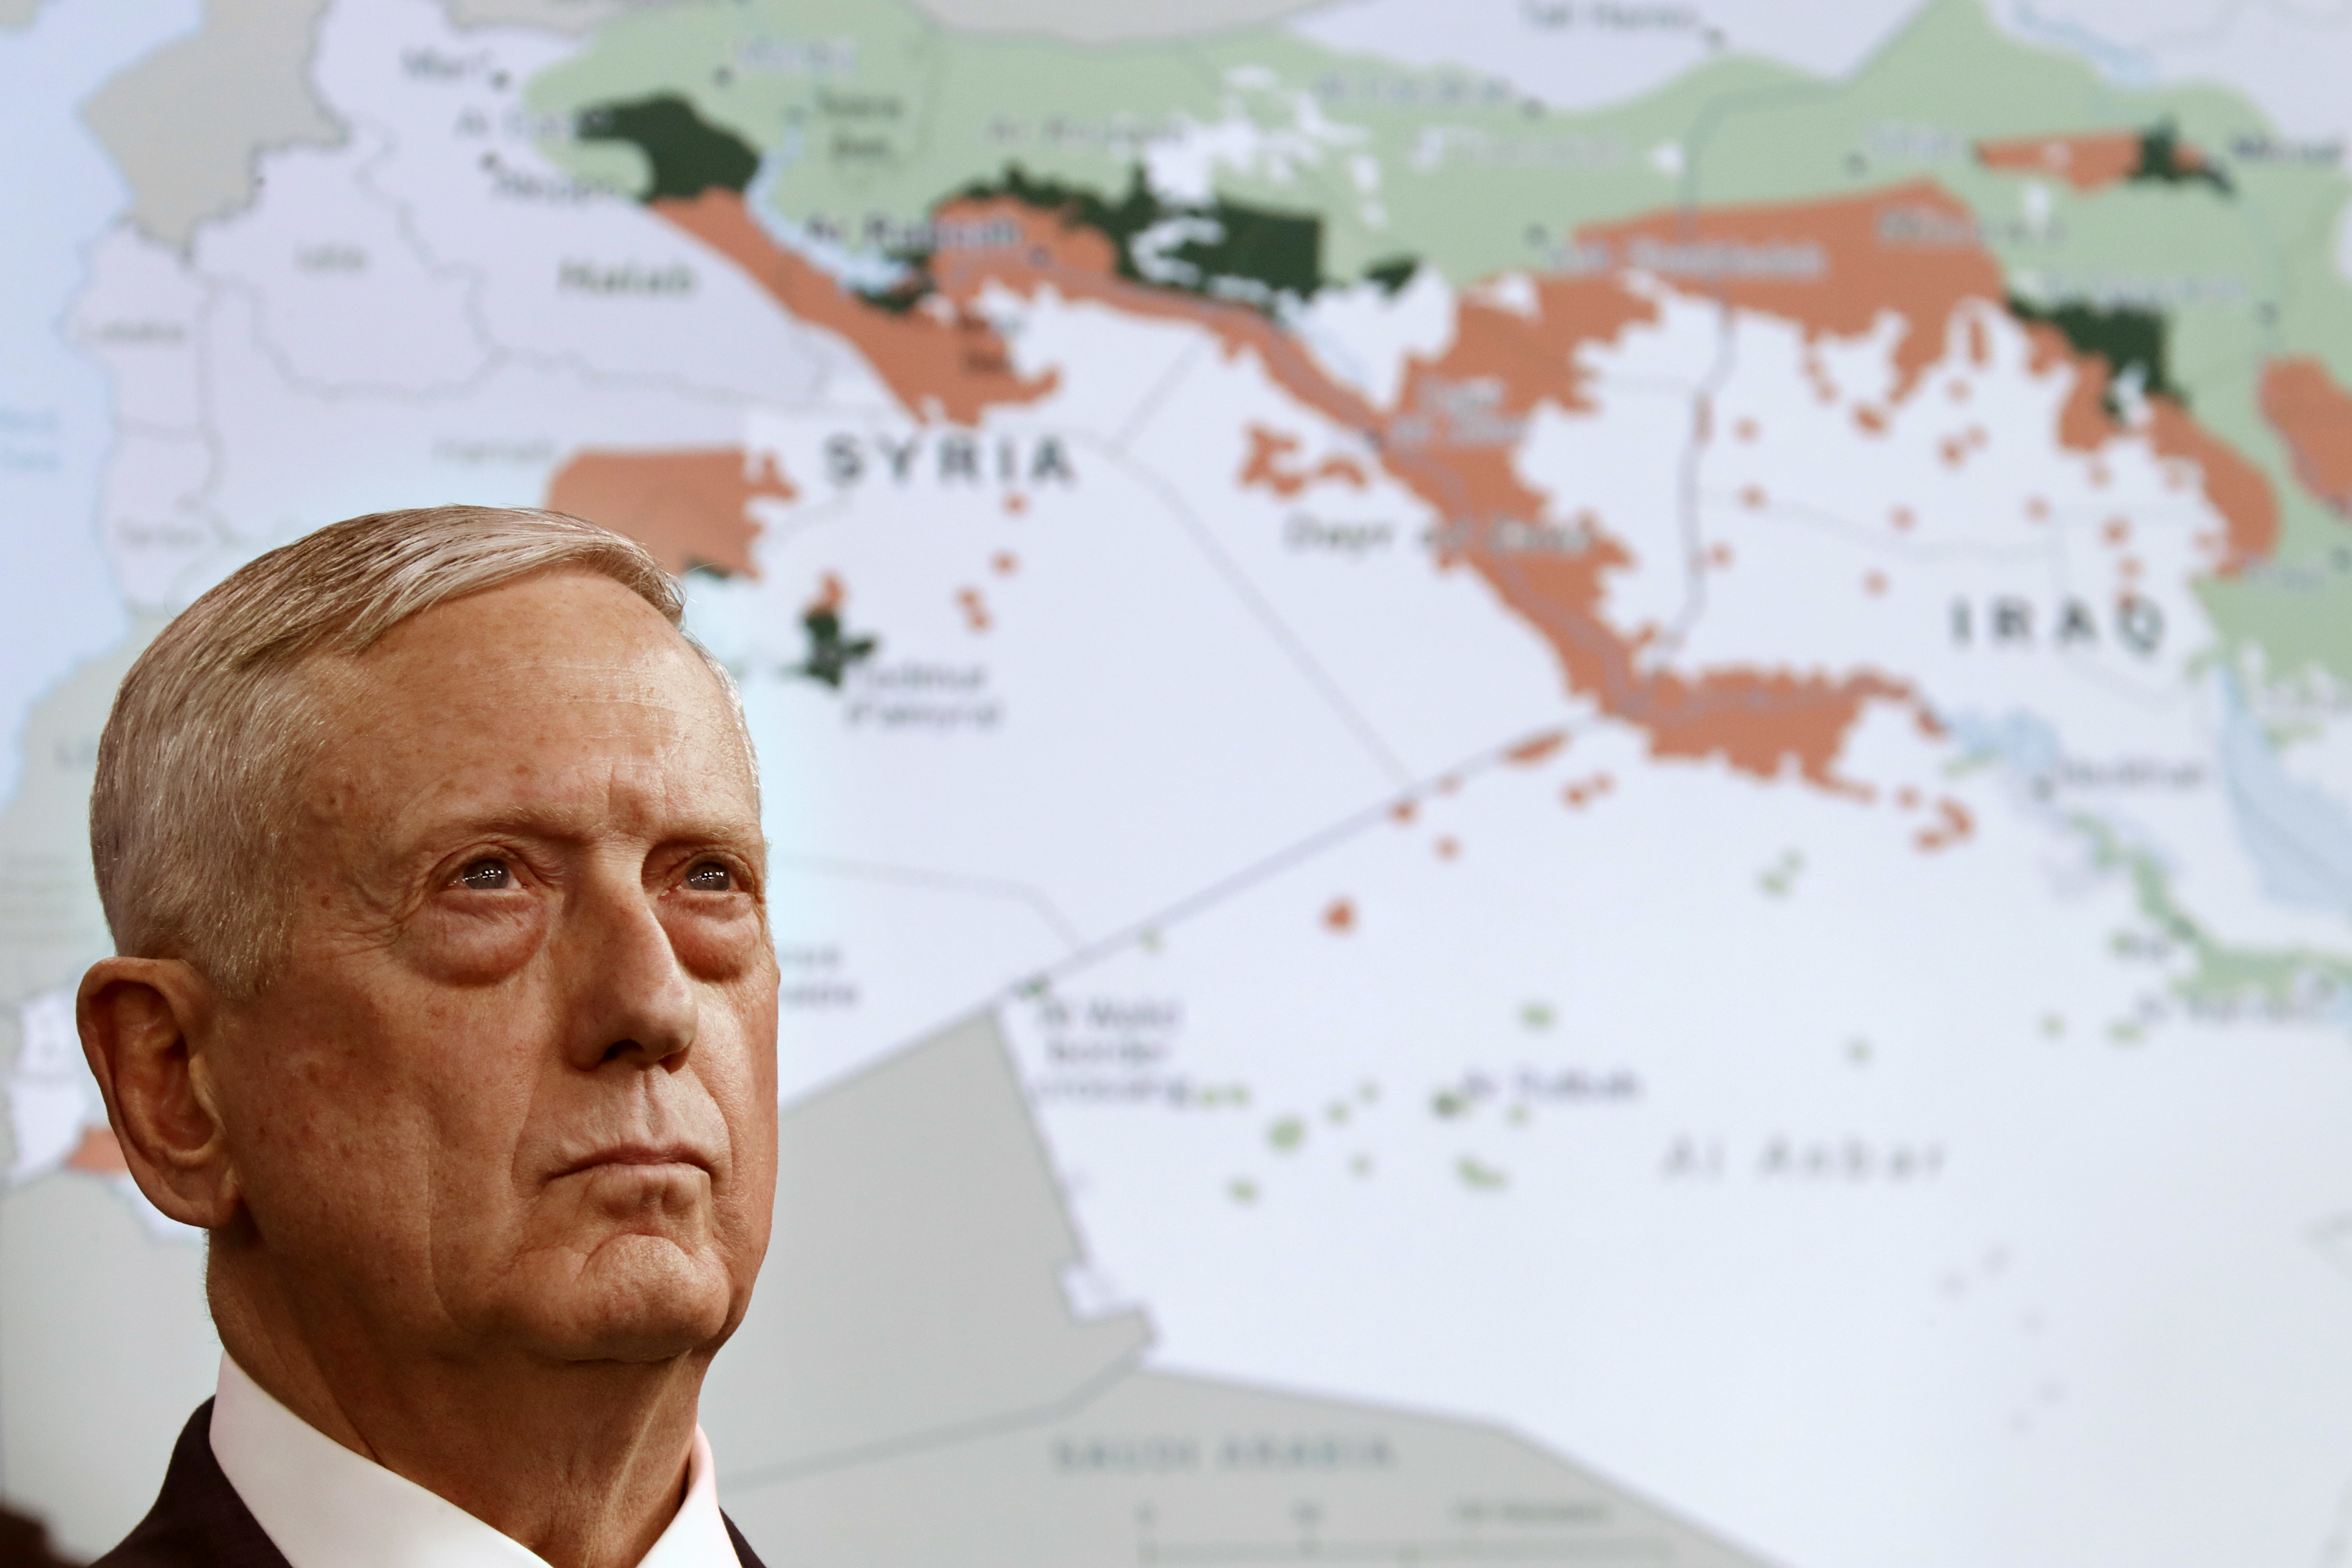 Secretary of Defense Jim Mattis stands in front of a map of Syria and Iraq, while speaking to the media about the Islamic State group at the Pentagon, May 19, 2017.